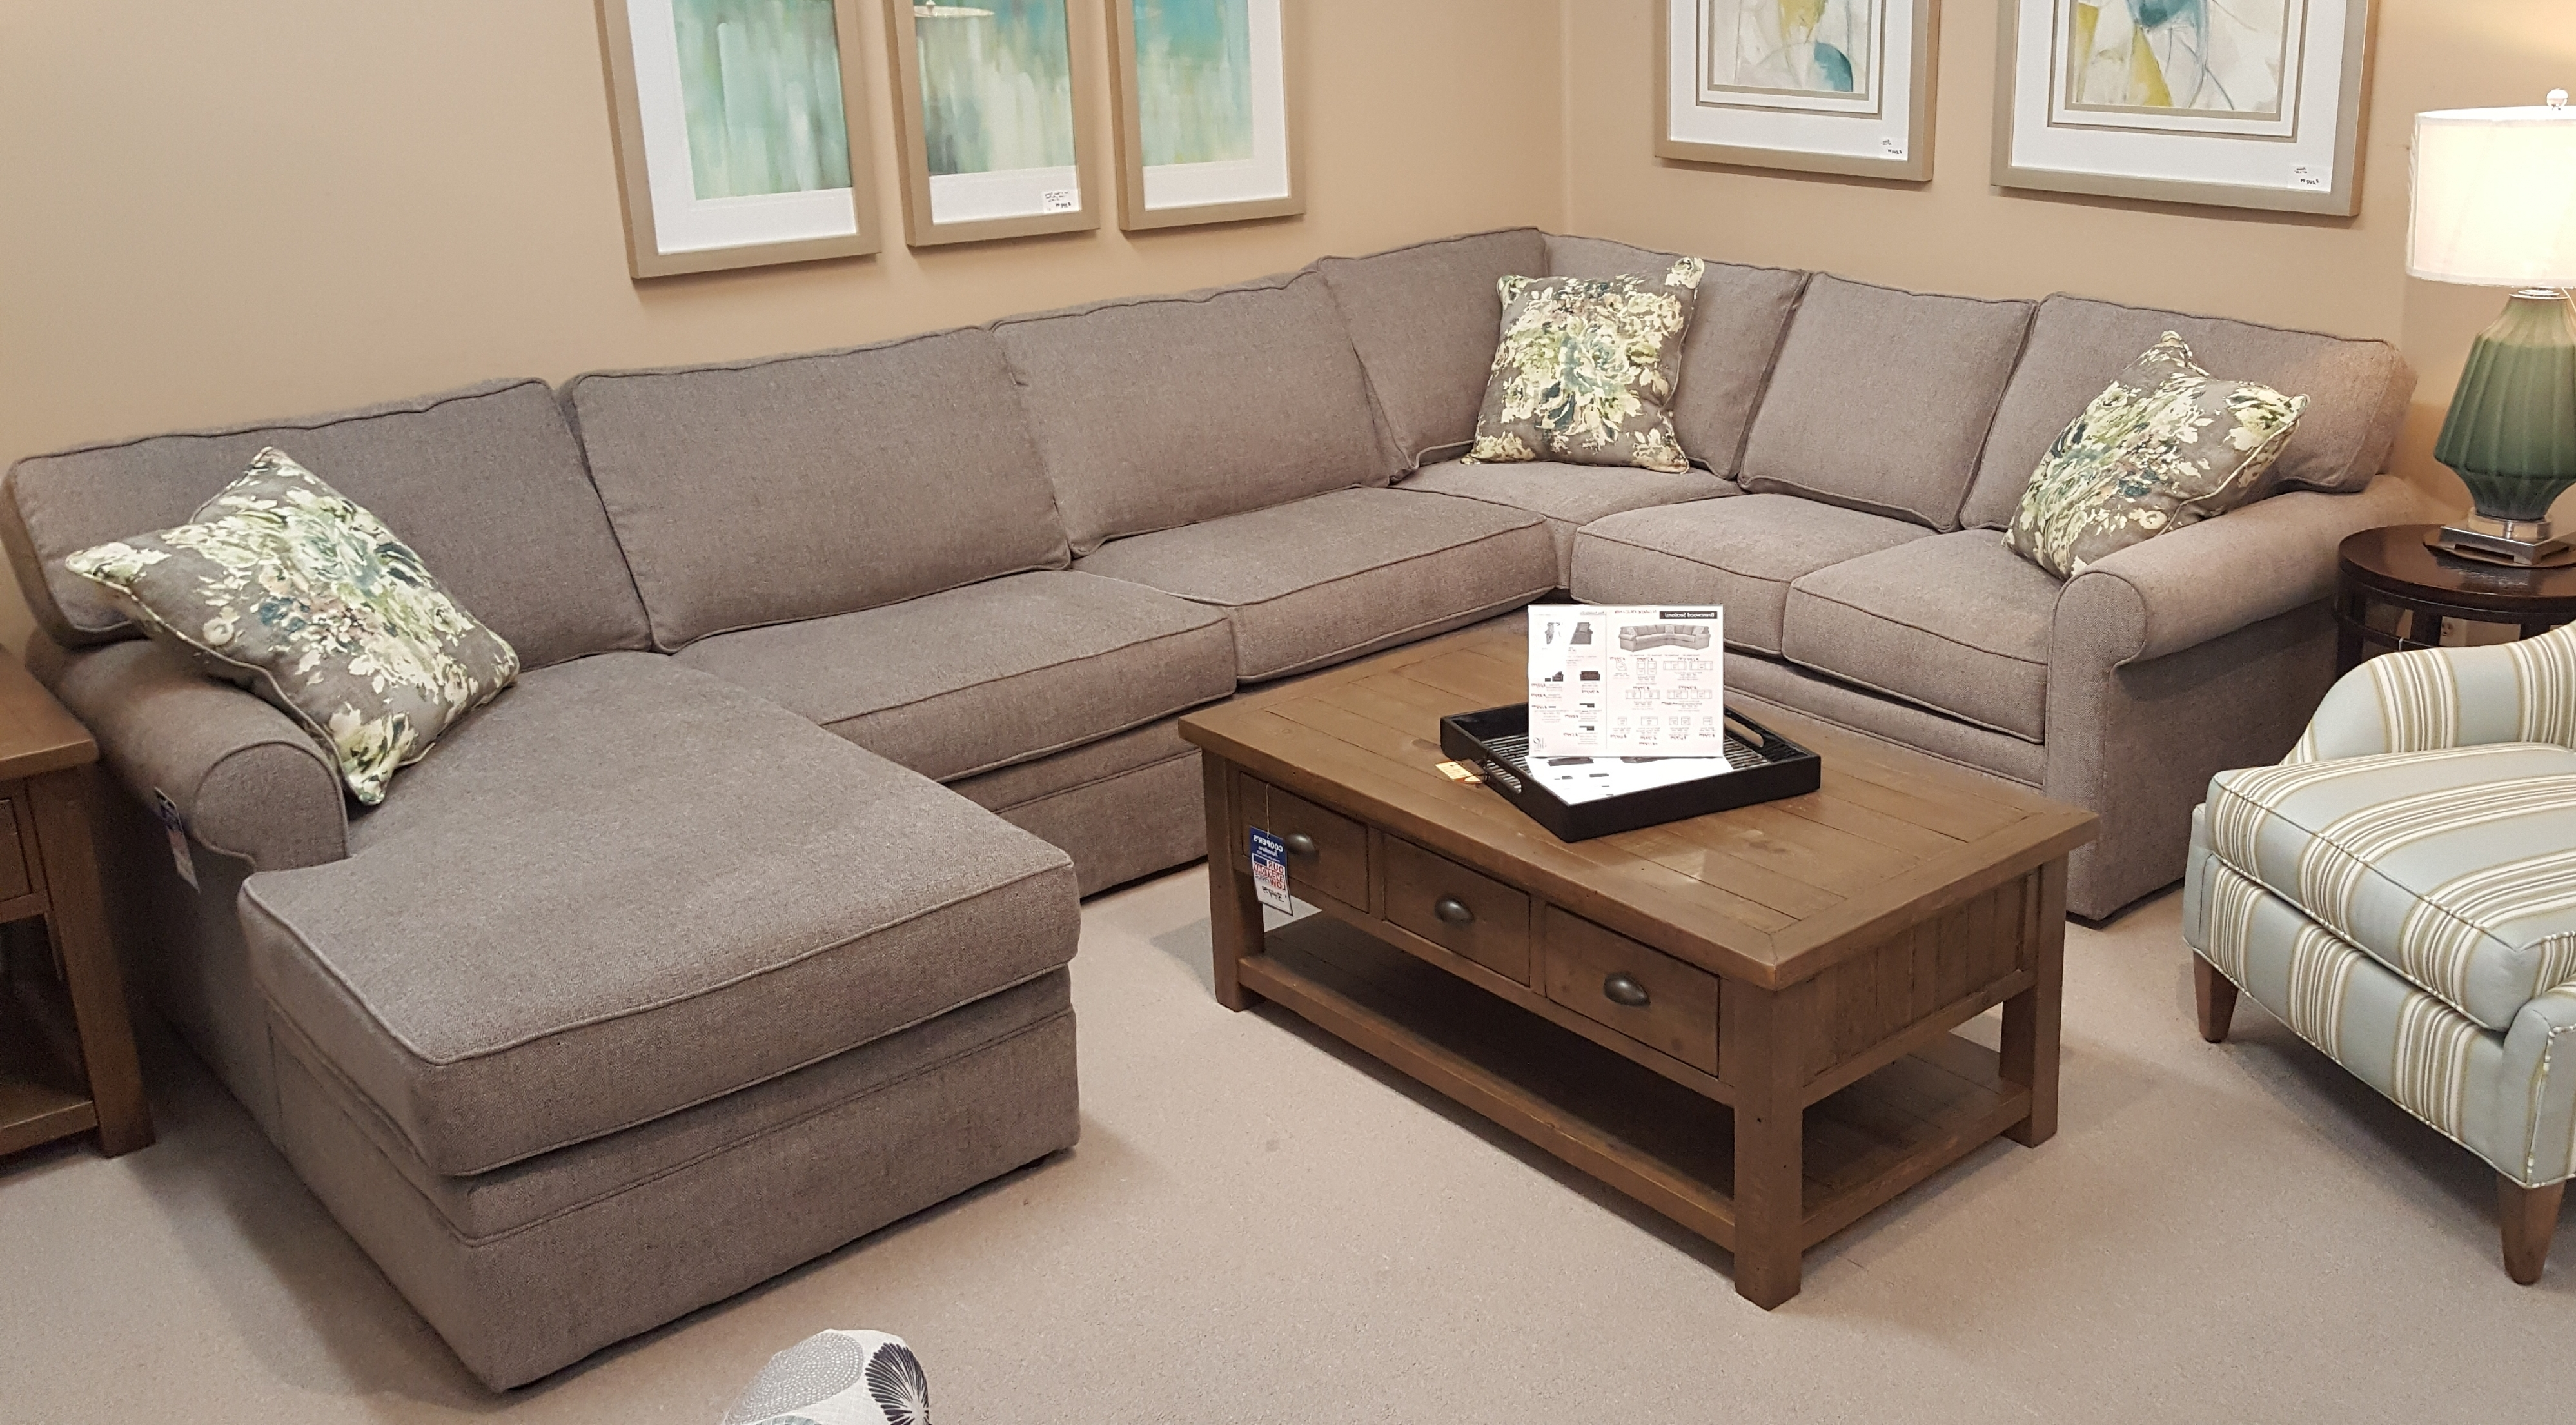 living sofa american sectional jitterbuggunmetal gray freight discount couches sofas sectionals rooms